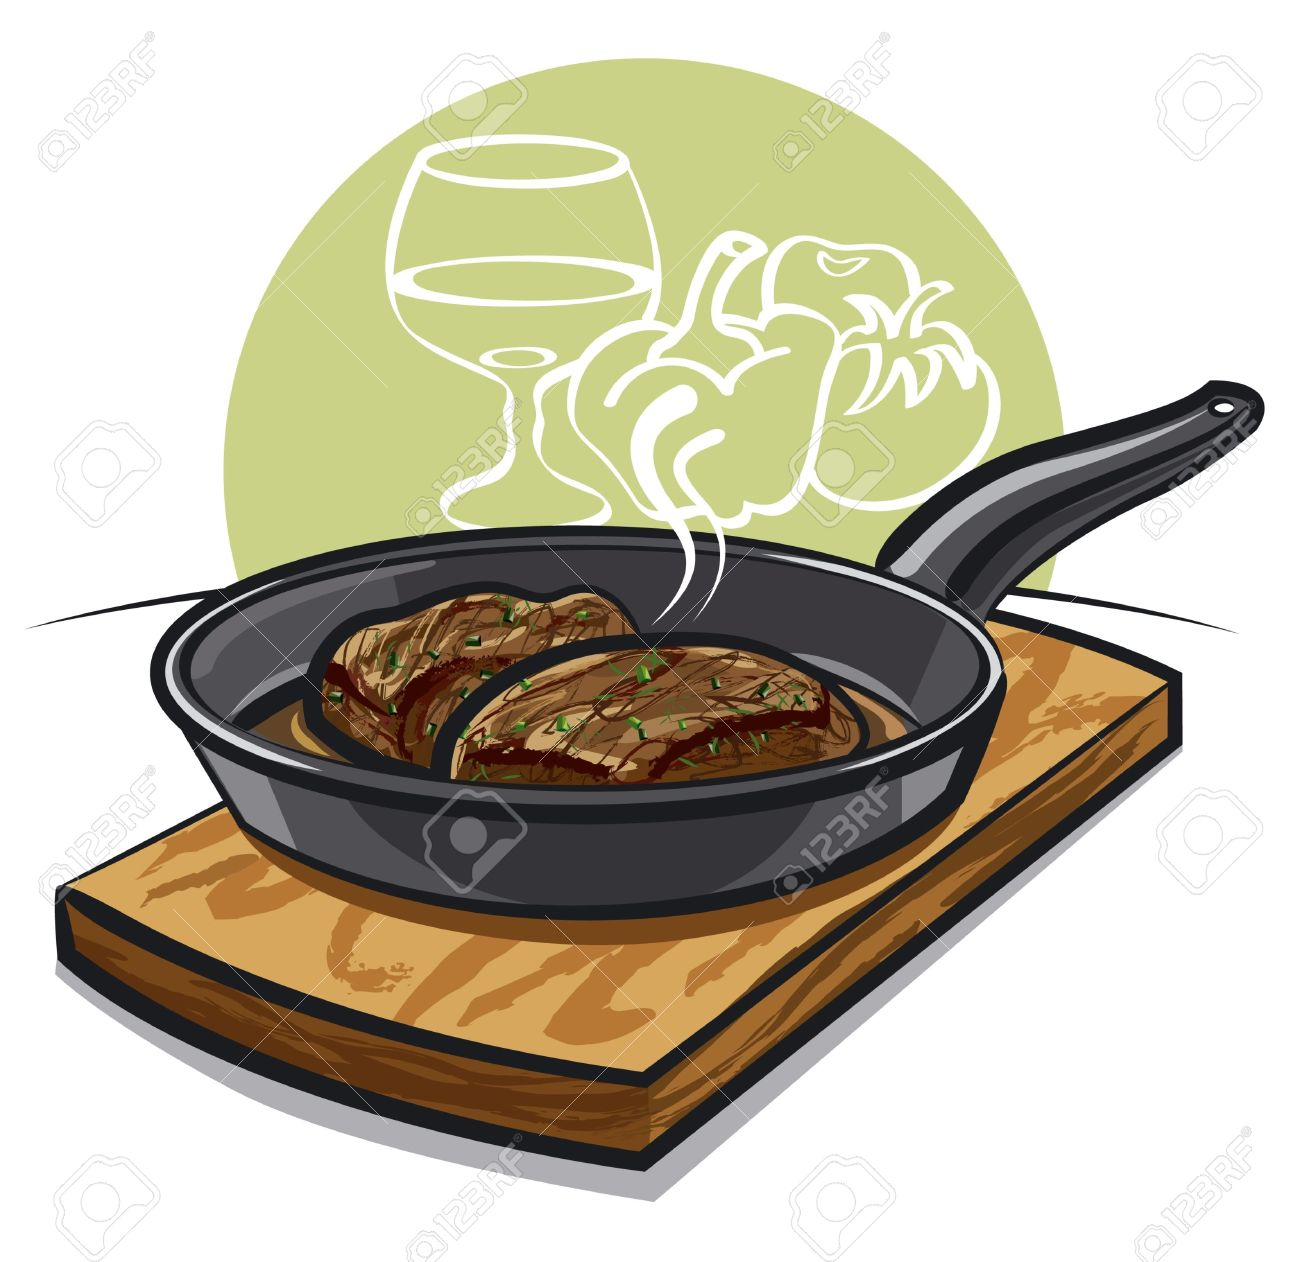 Hot Steak On A Pan Royalty Free Cliparts, Vectors, And Stock.